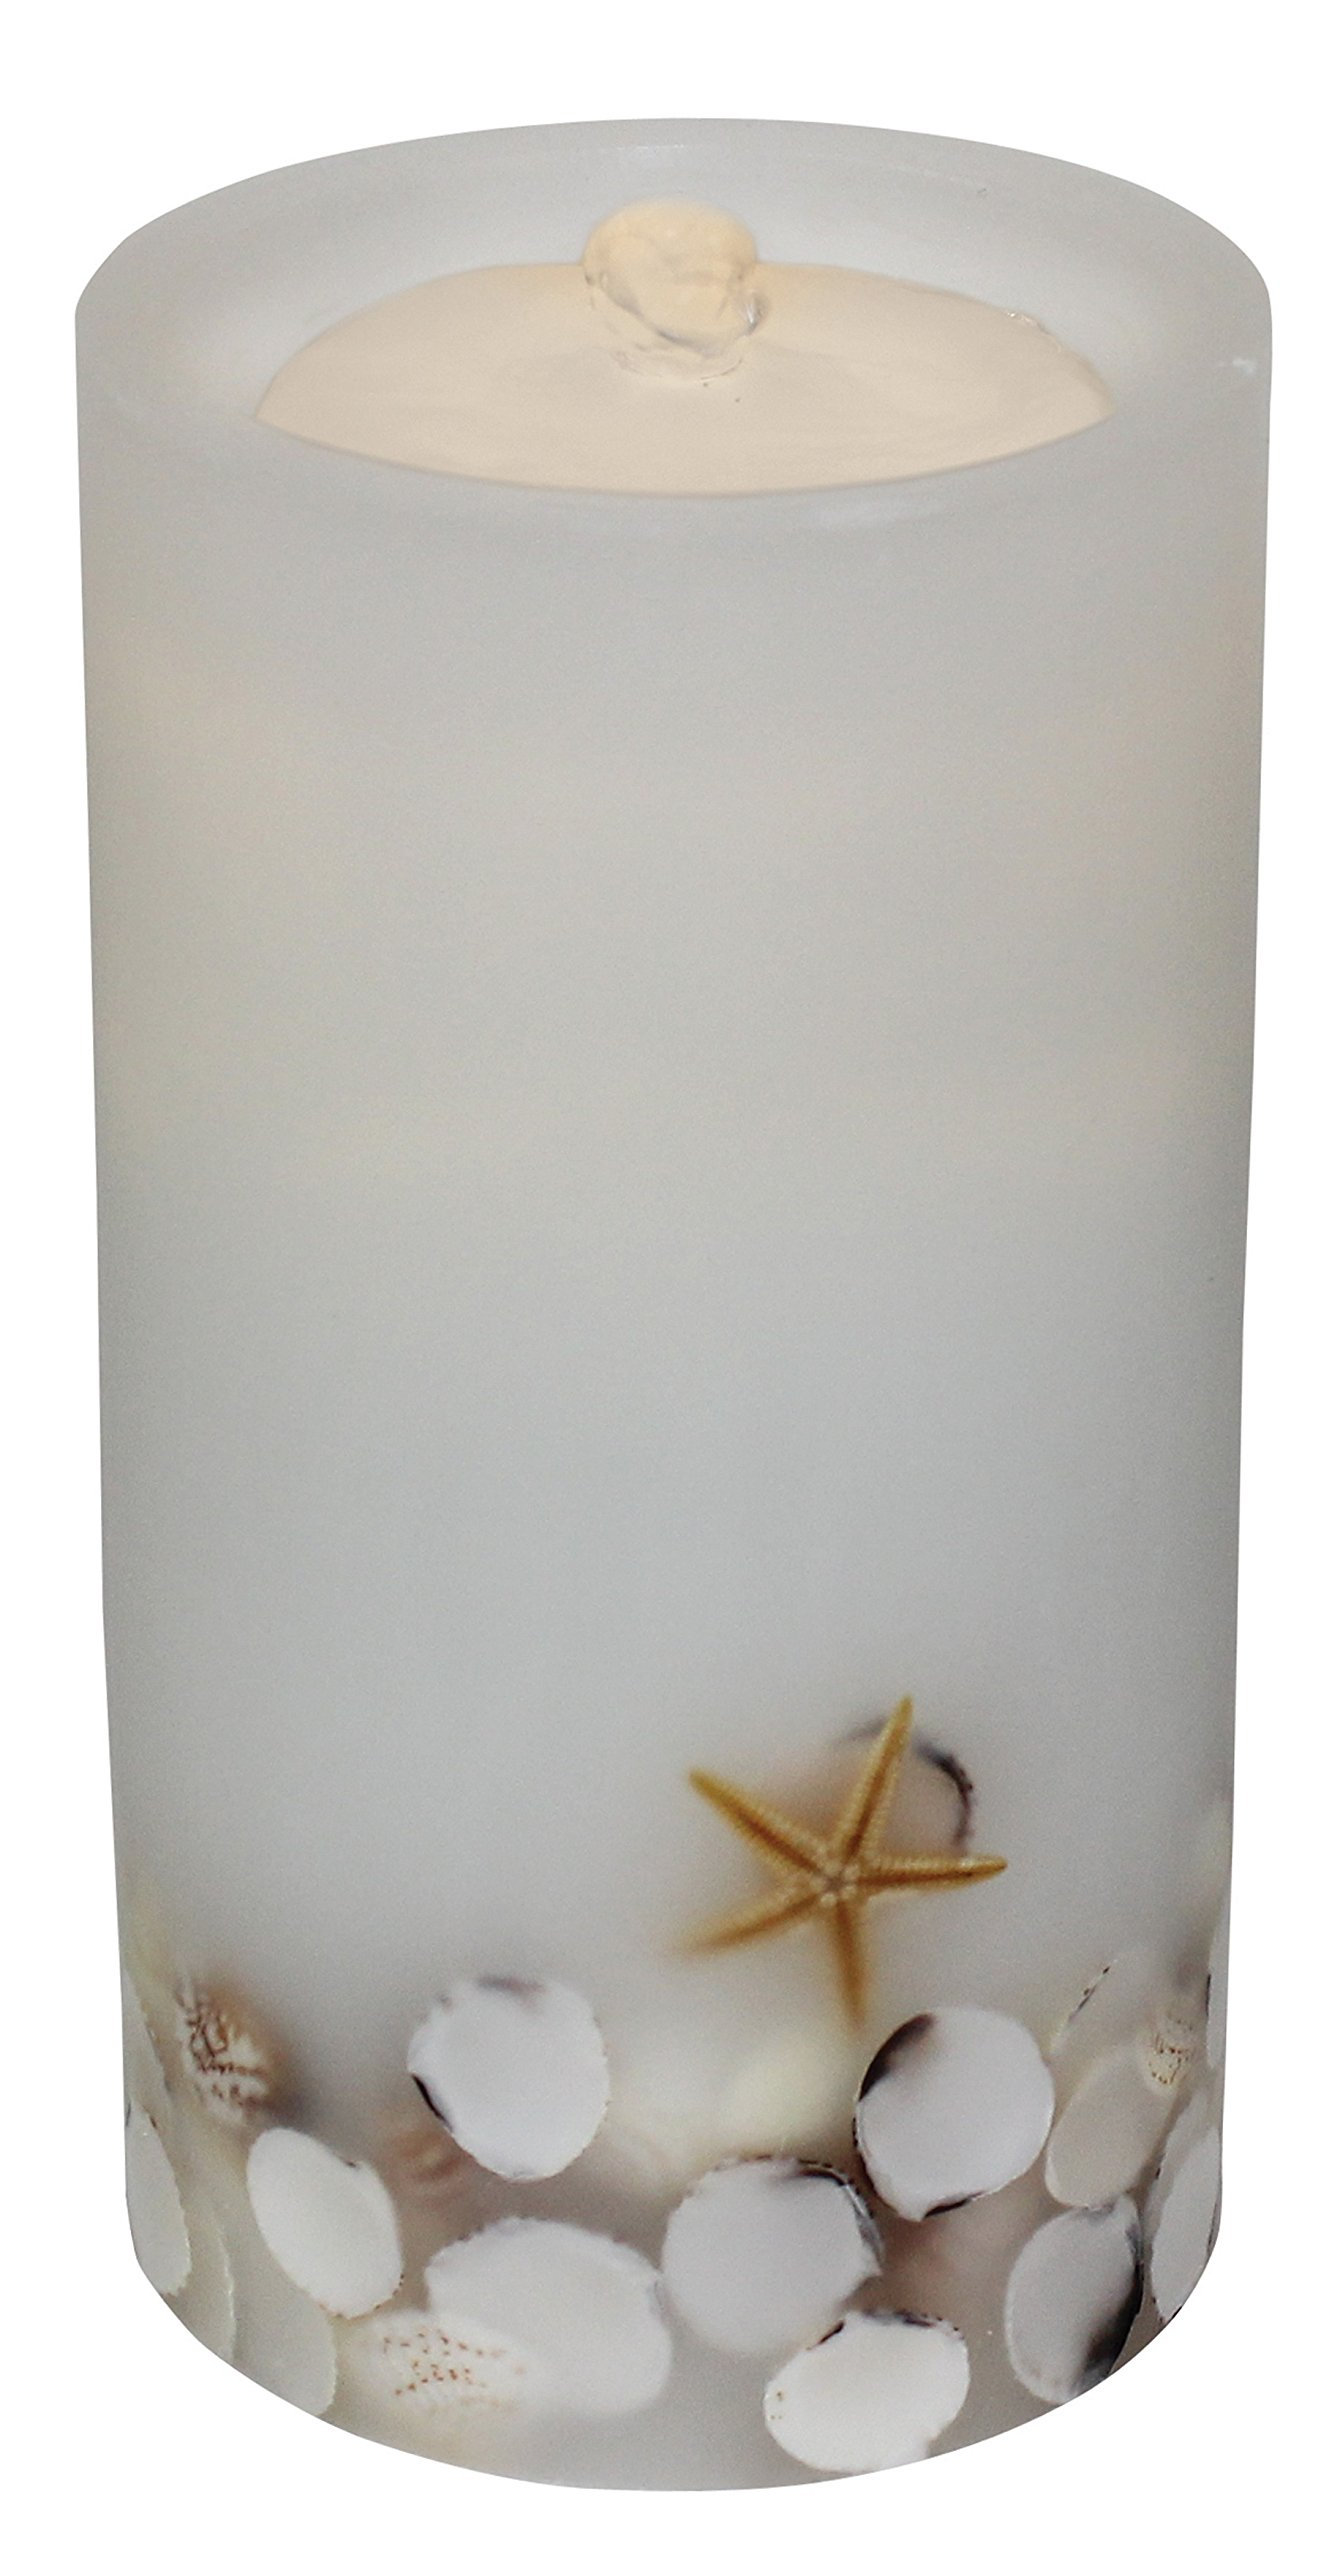 Bethlehem Lighting GKI AQUAFLAME White Seashell Flameless Candle/Fountain